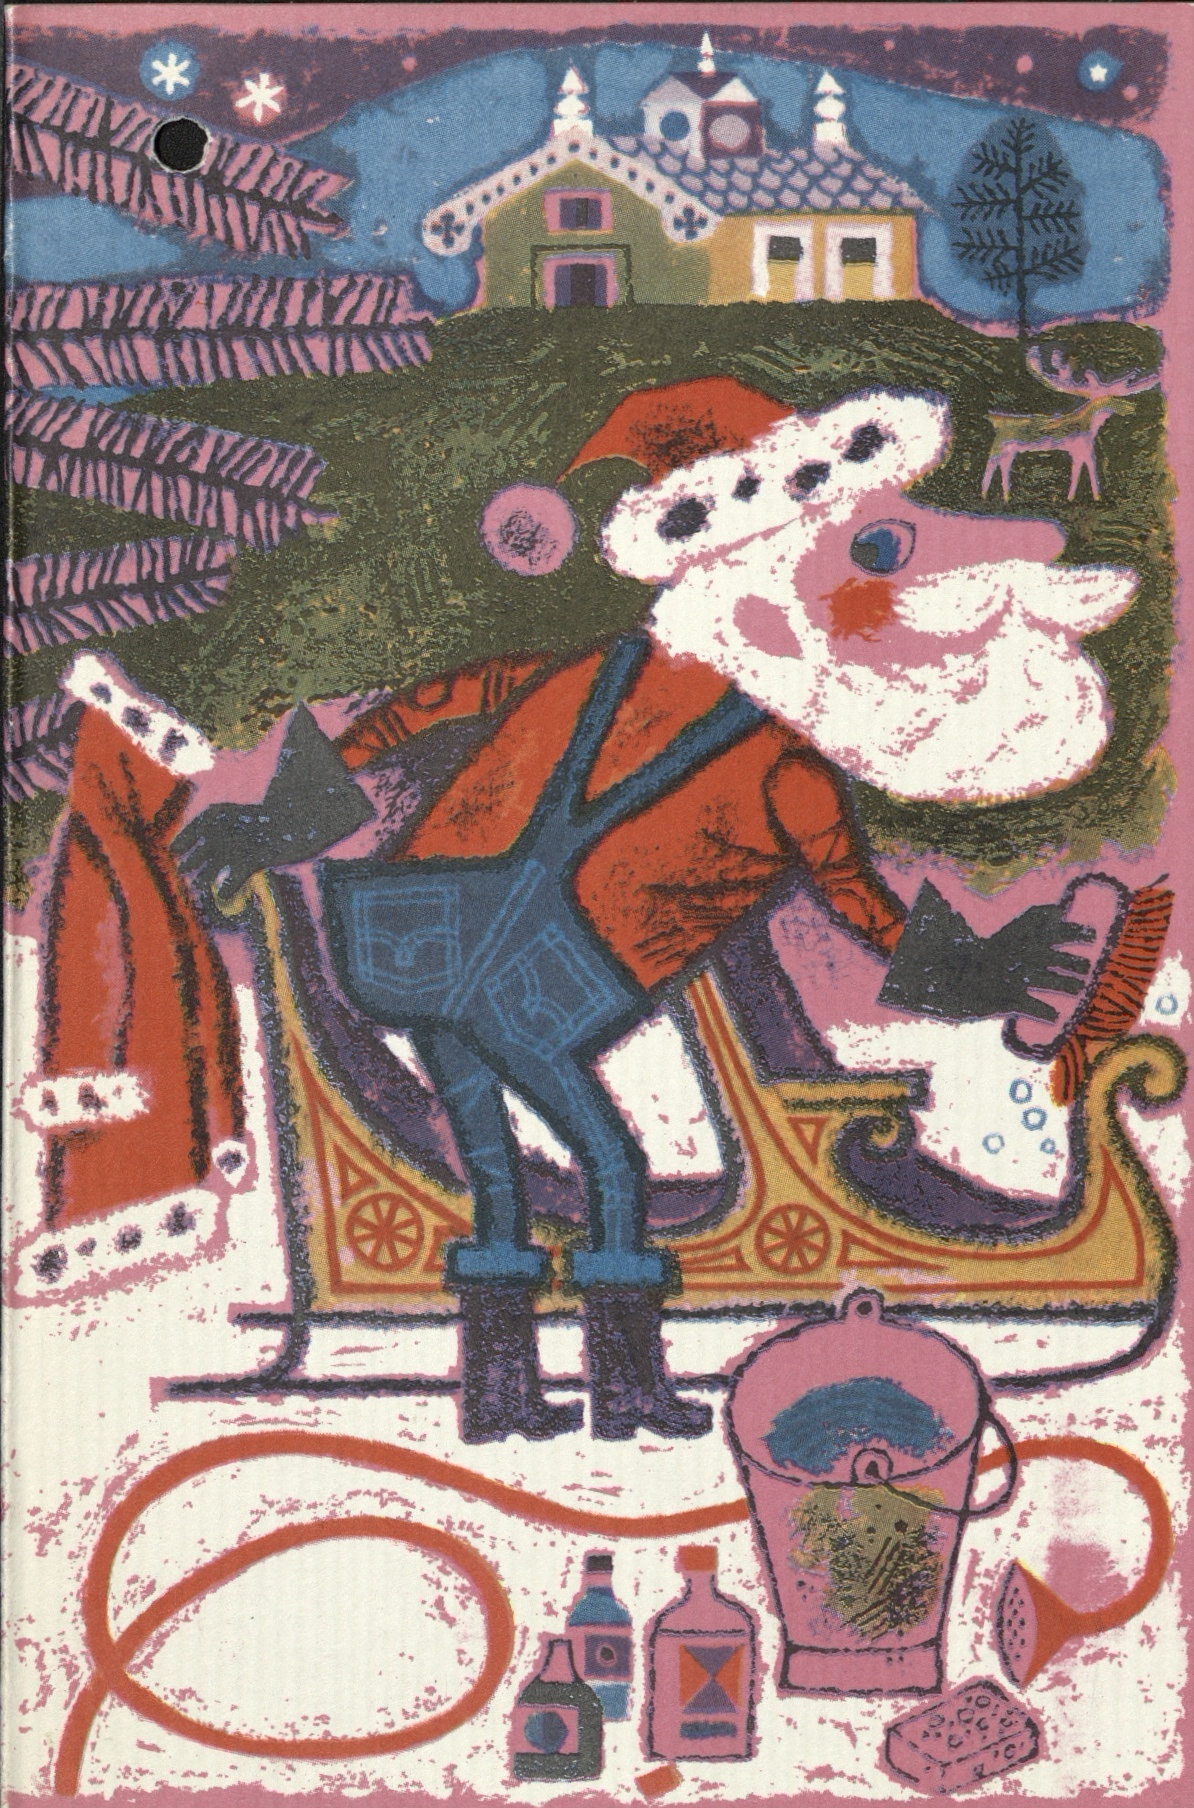 Letter to Santa card cover 1965. © Royal Mail Group Ltd, courtesy of The British Postal Museum & Archive